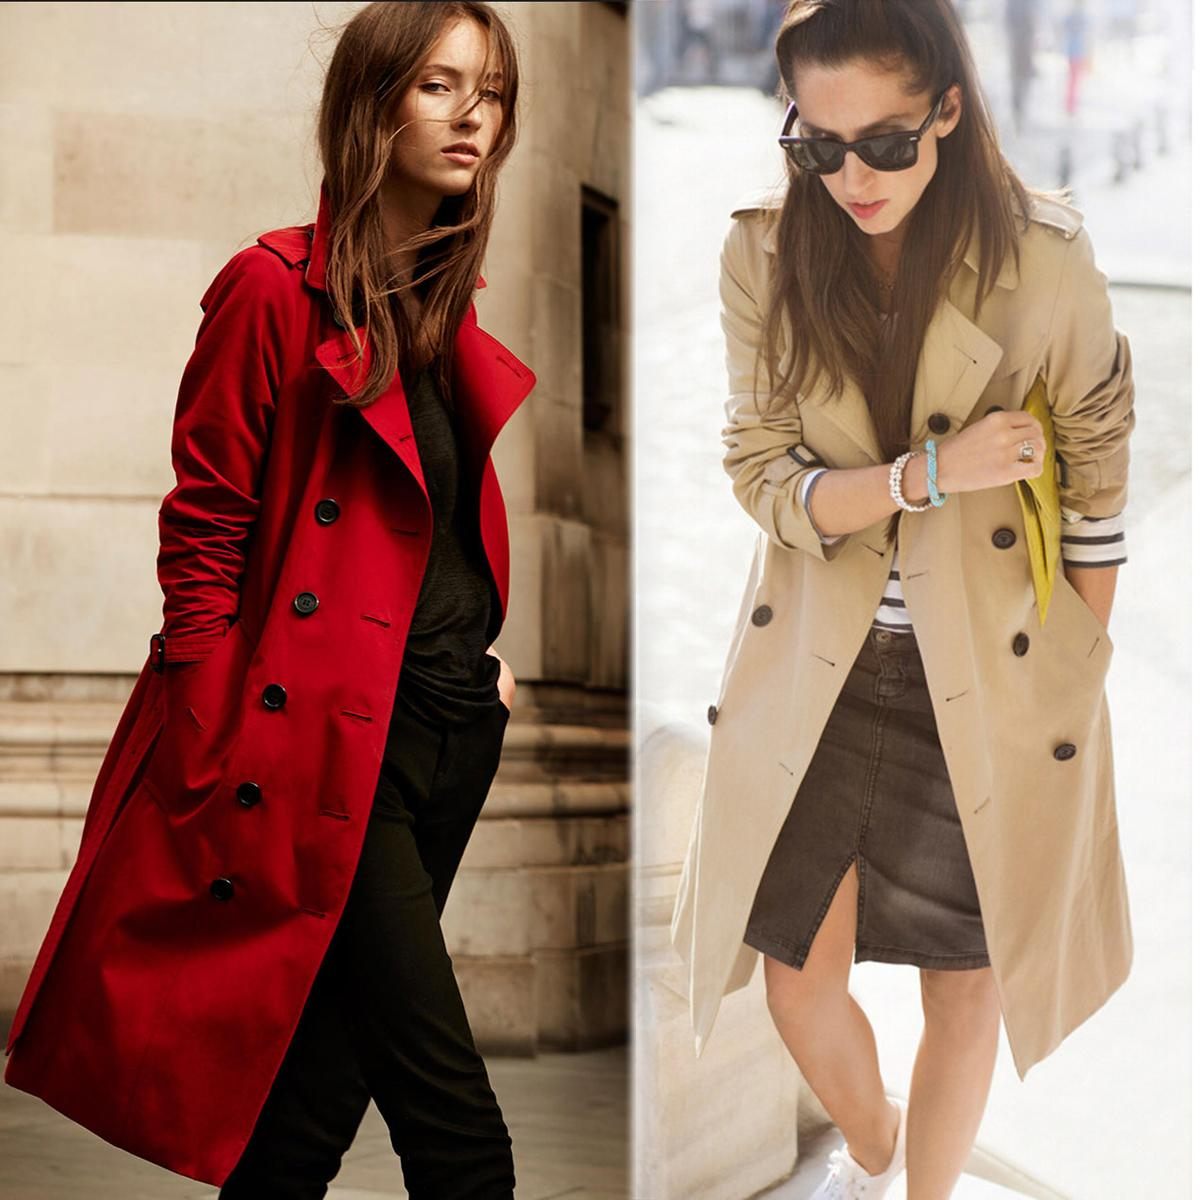 JAZZEVAR 2017 Autumn New High Fashion Brand Woman Classic Double Breasted Trench Coat Waterproof Raincoat Business Outerwear